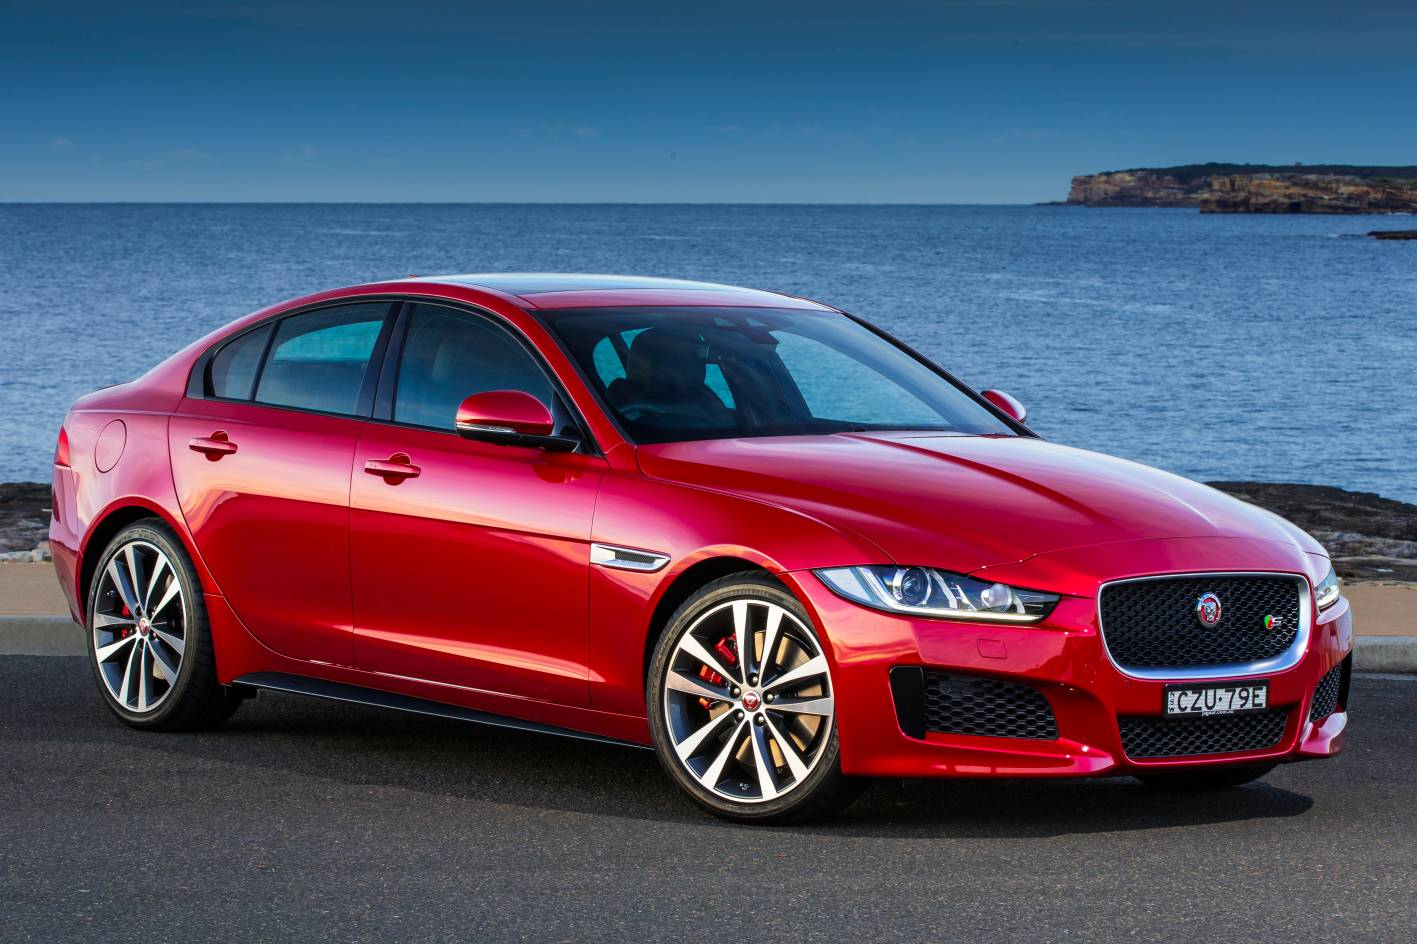 2016 Jaguar XE Review - Photos